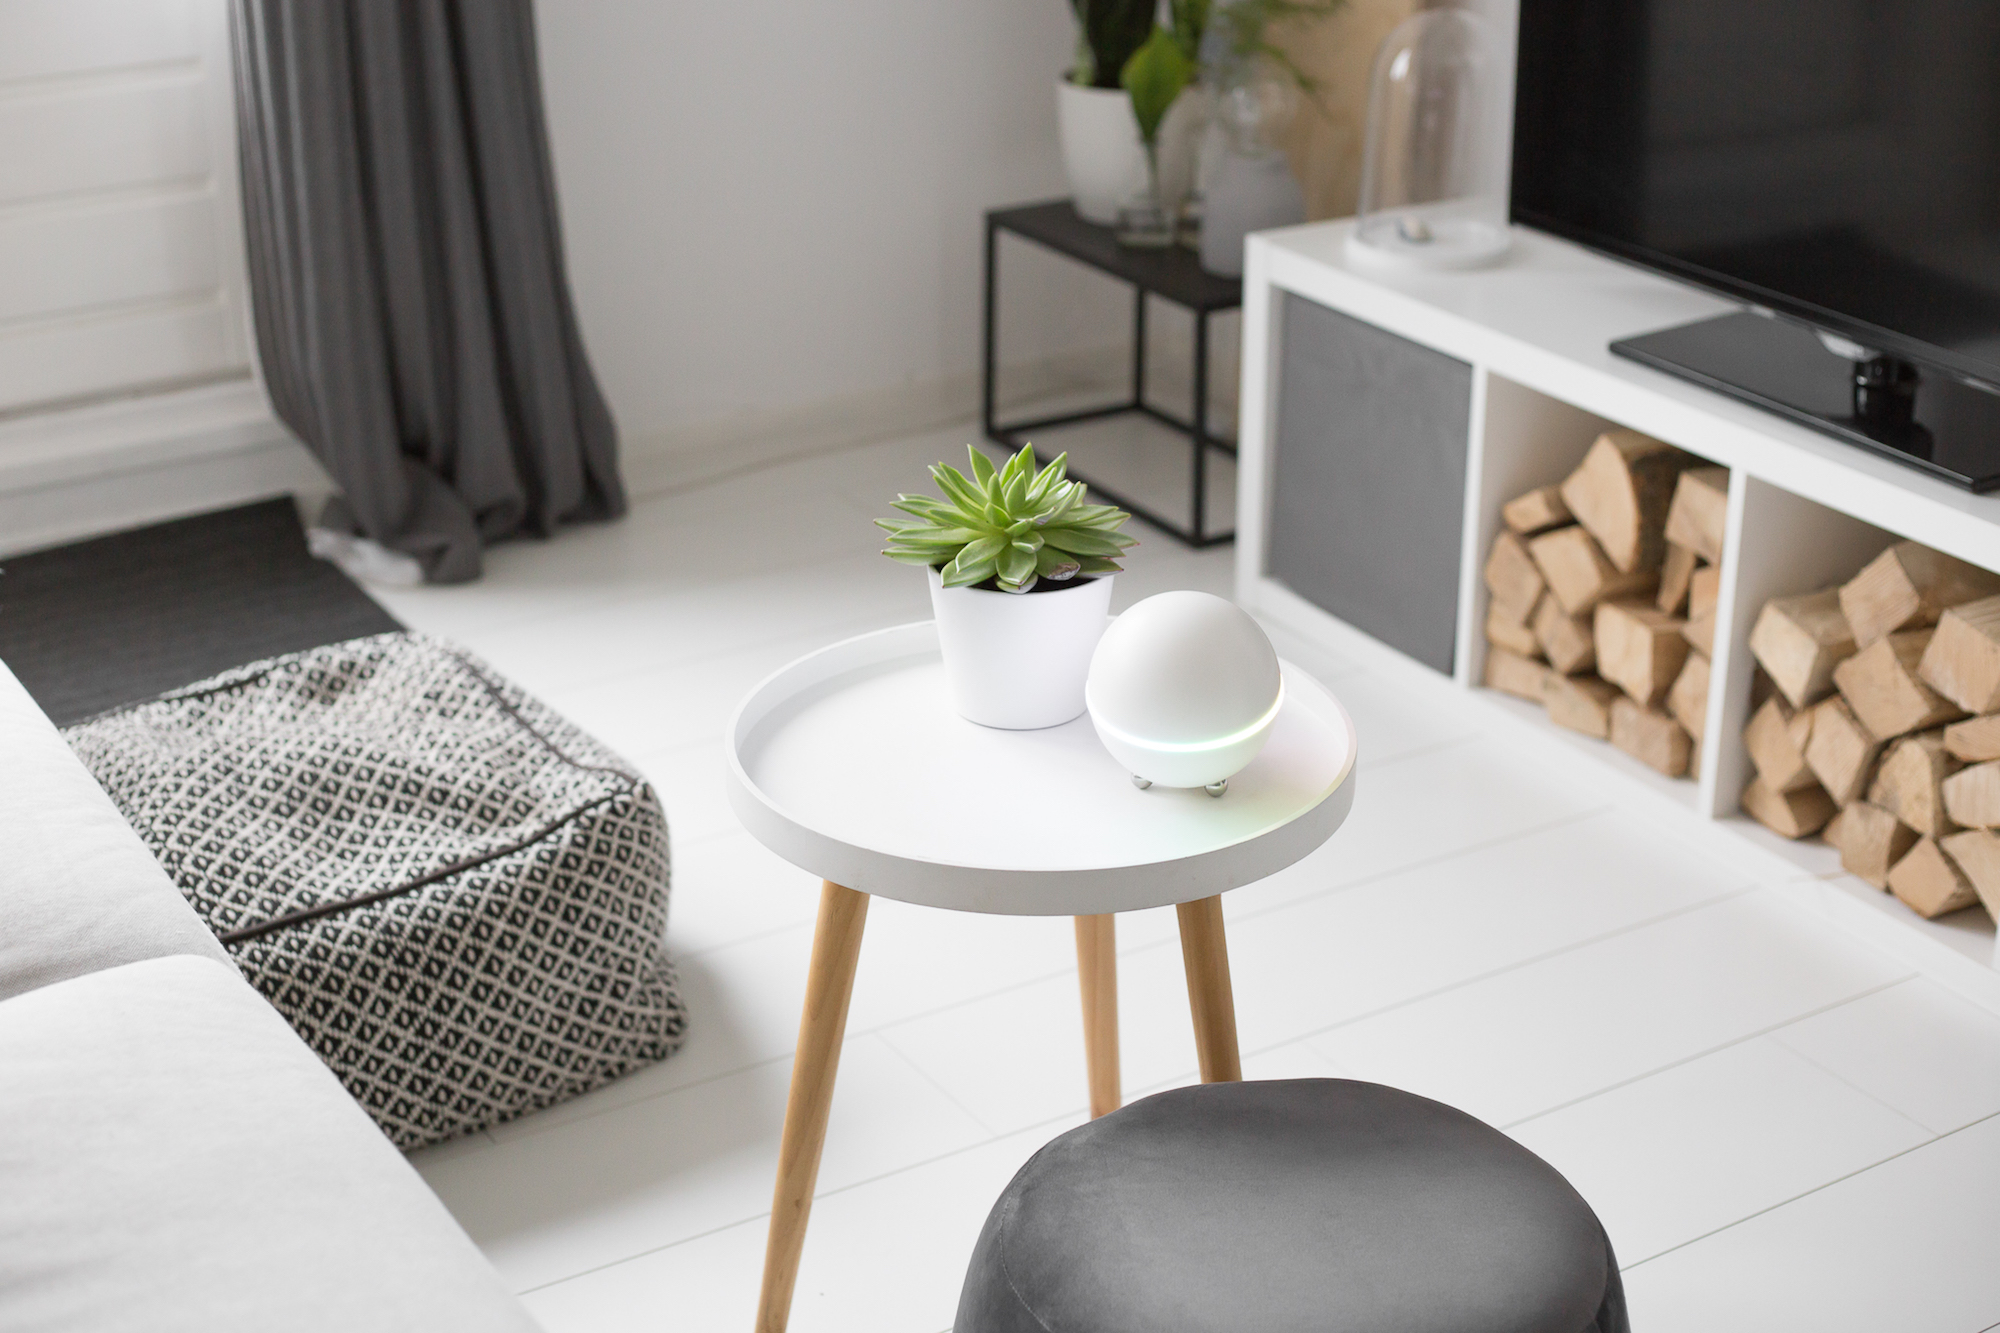 Homey hub for your smart home